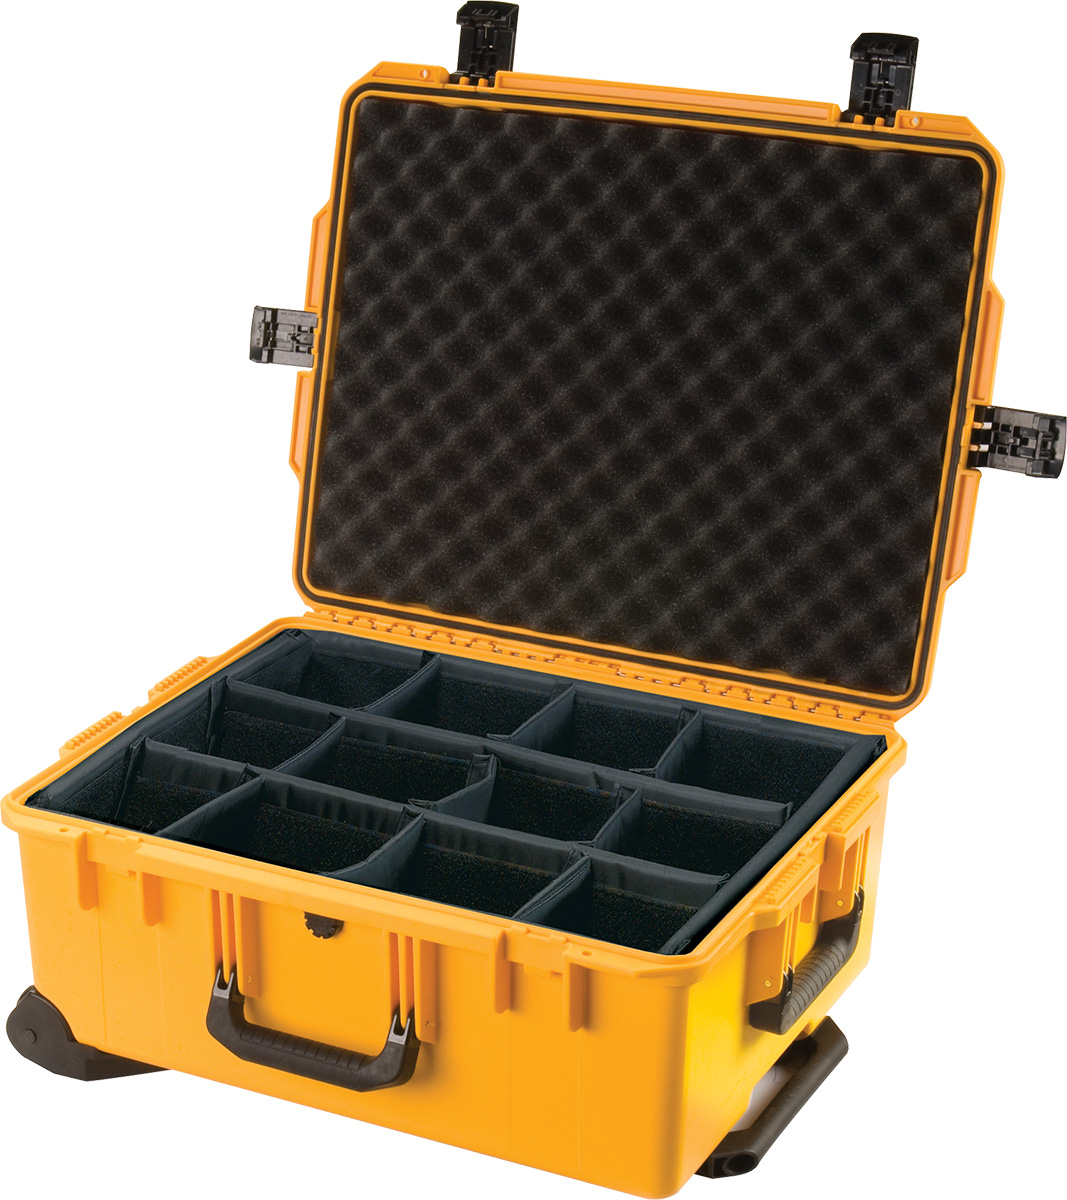 pelican im2720 im 2720 divider travel case